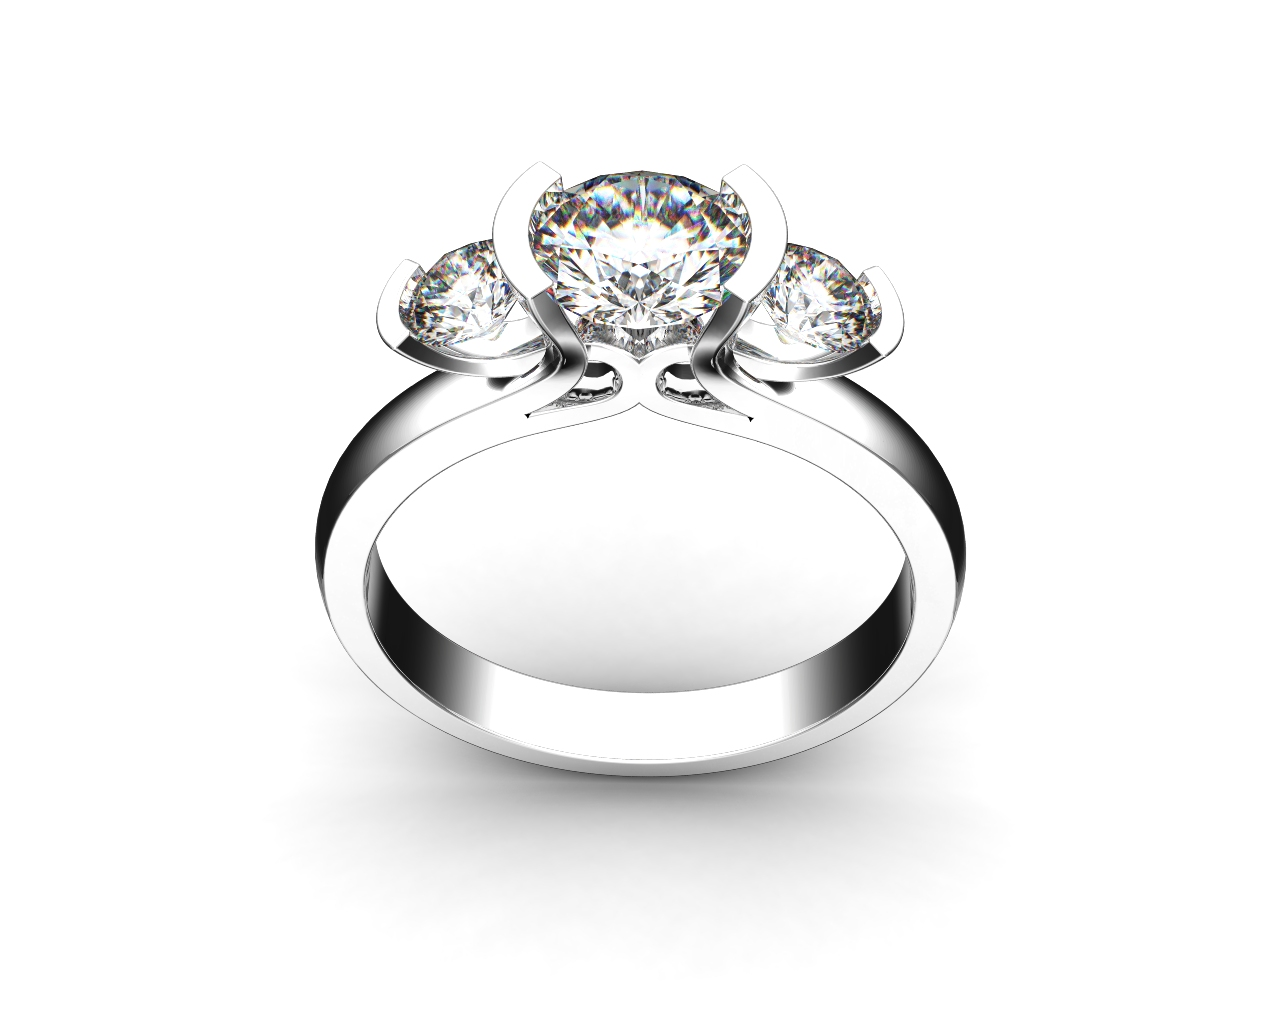 Round Brilliant Cut Diamond Trilogy Engagement Ring, Semi Bezel Tension Set Stones with a Fountain Undersetting.